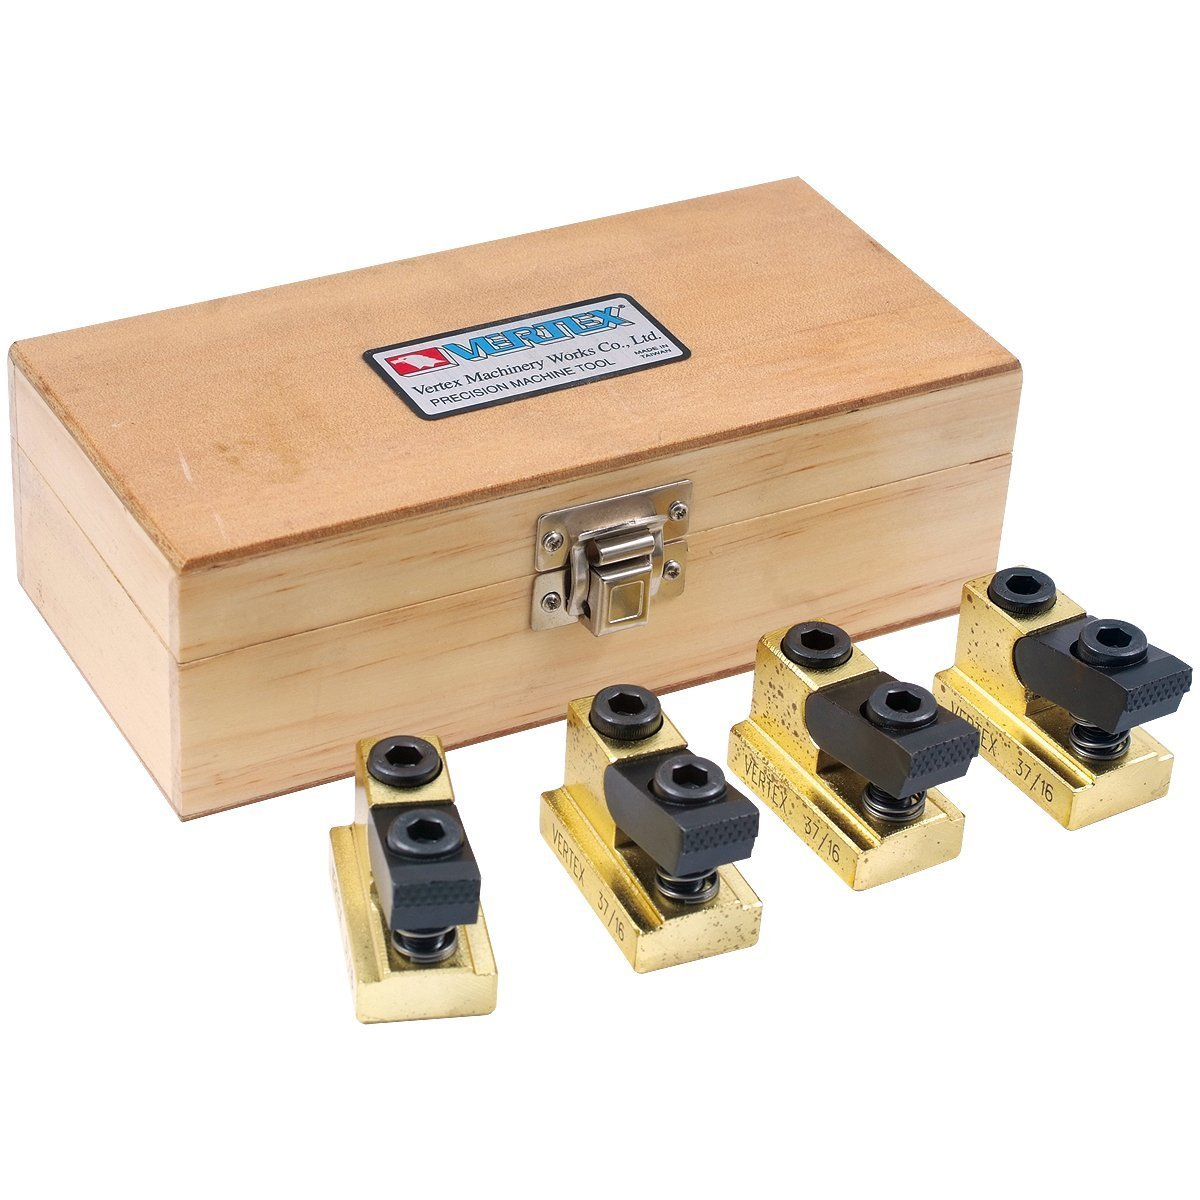 HHIP 3900-0315 Pro-Series 4 Piece 1/2'' T-Slot Clamping Nut Kit